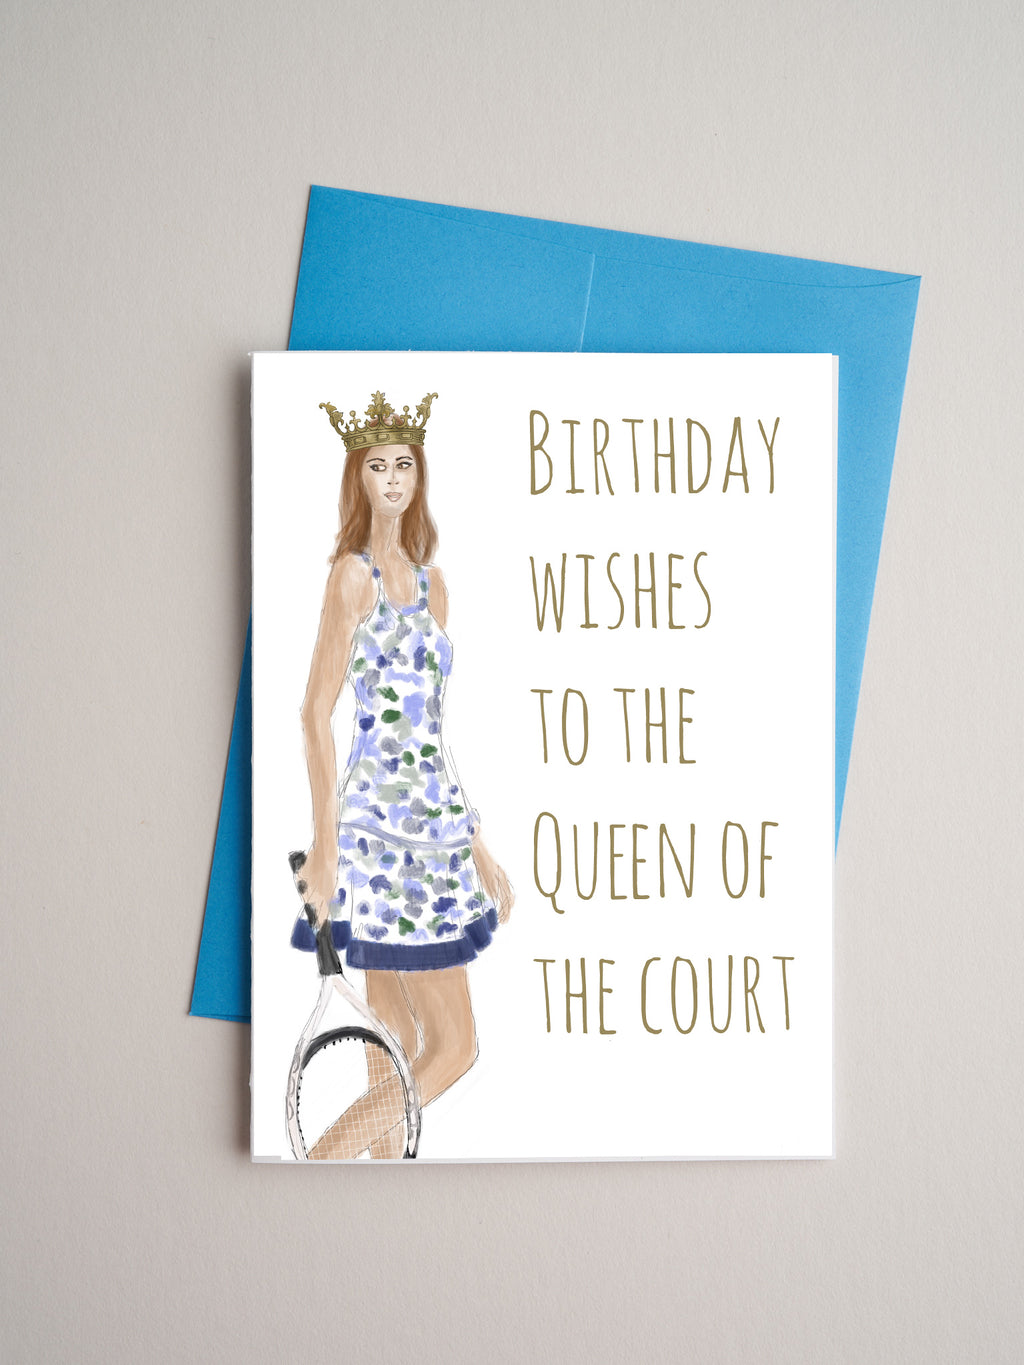 BD-21-16 | Queen Court